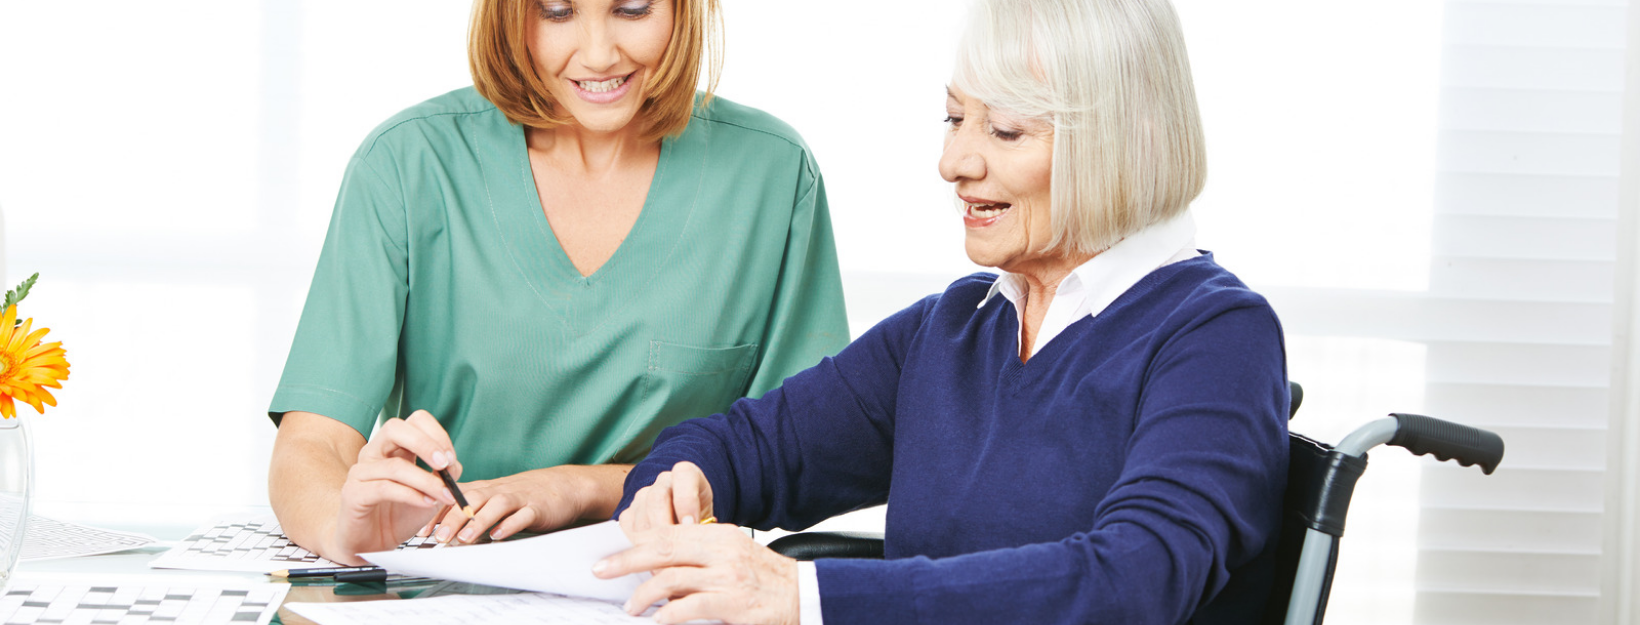 caregiver helping eldrly woman fill out forms